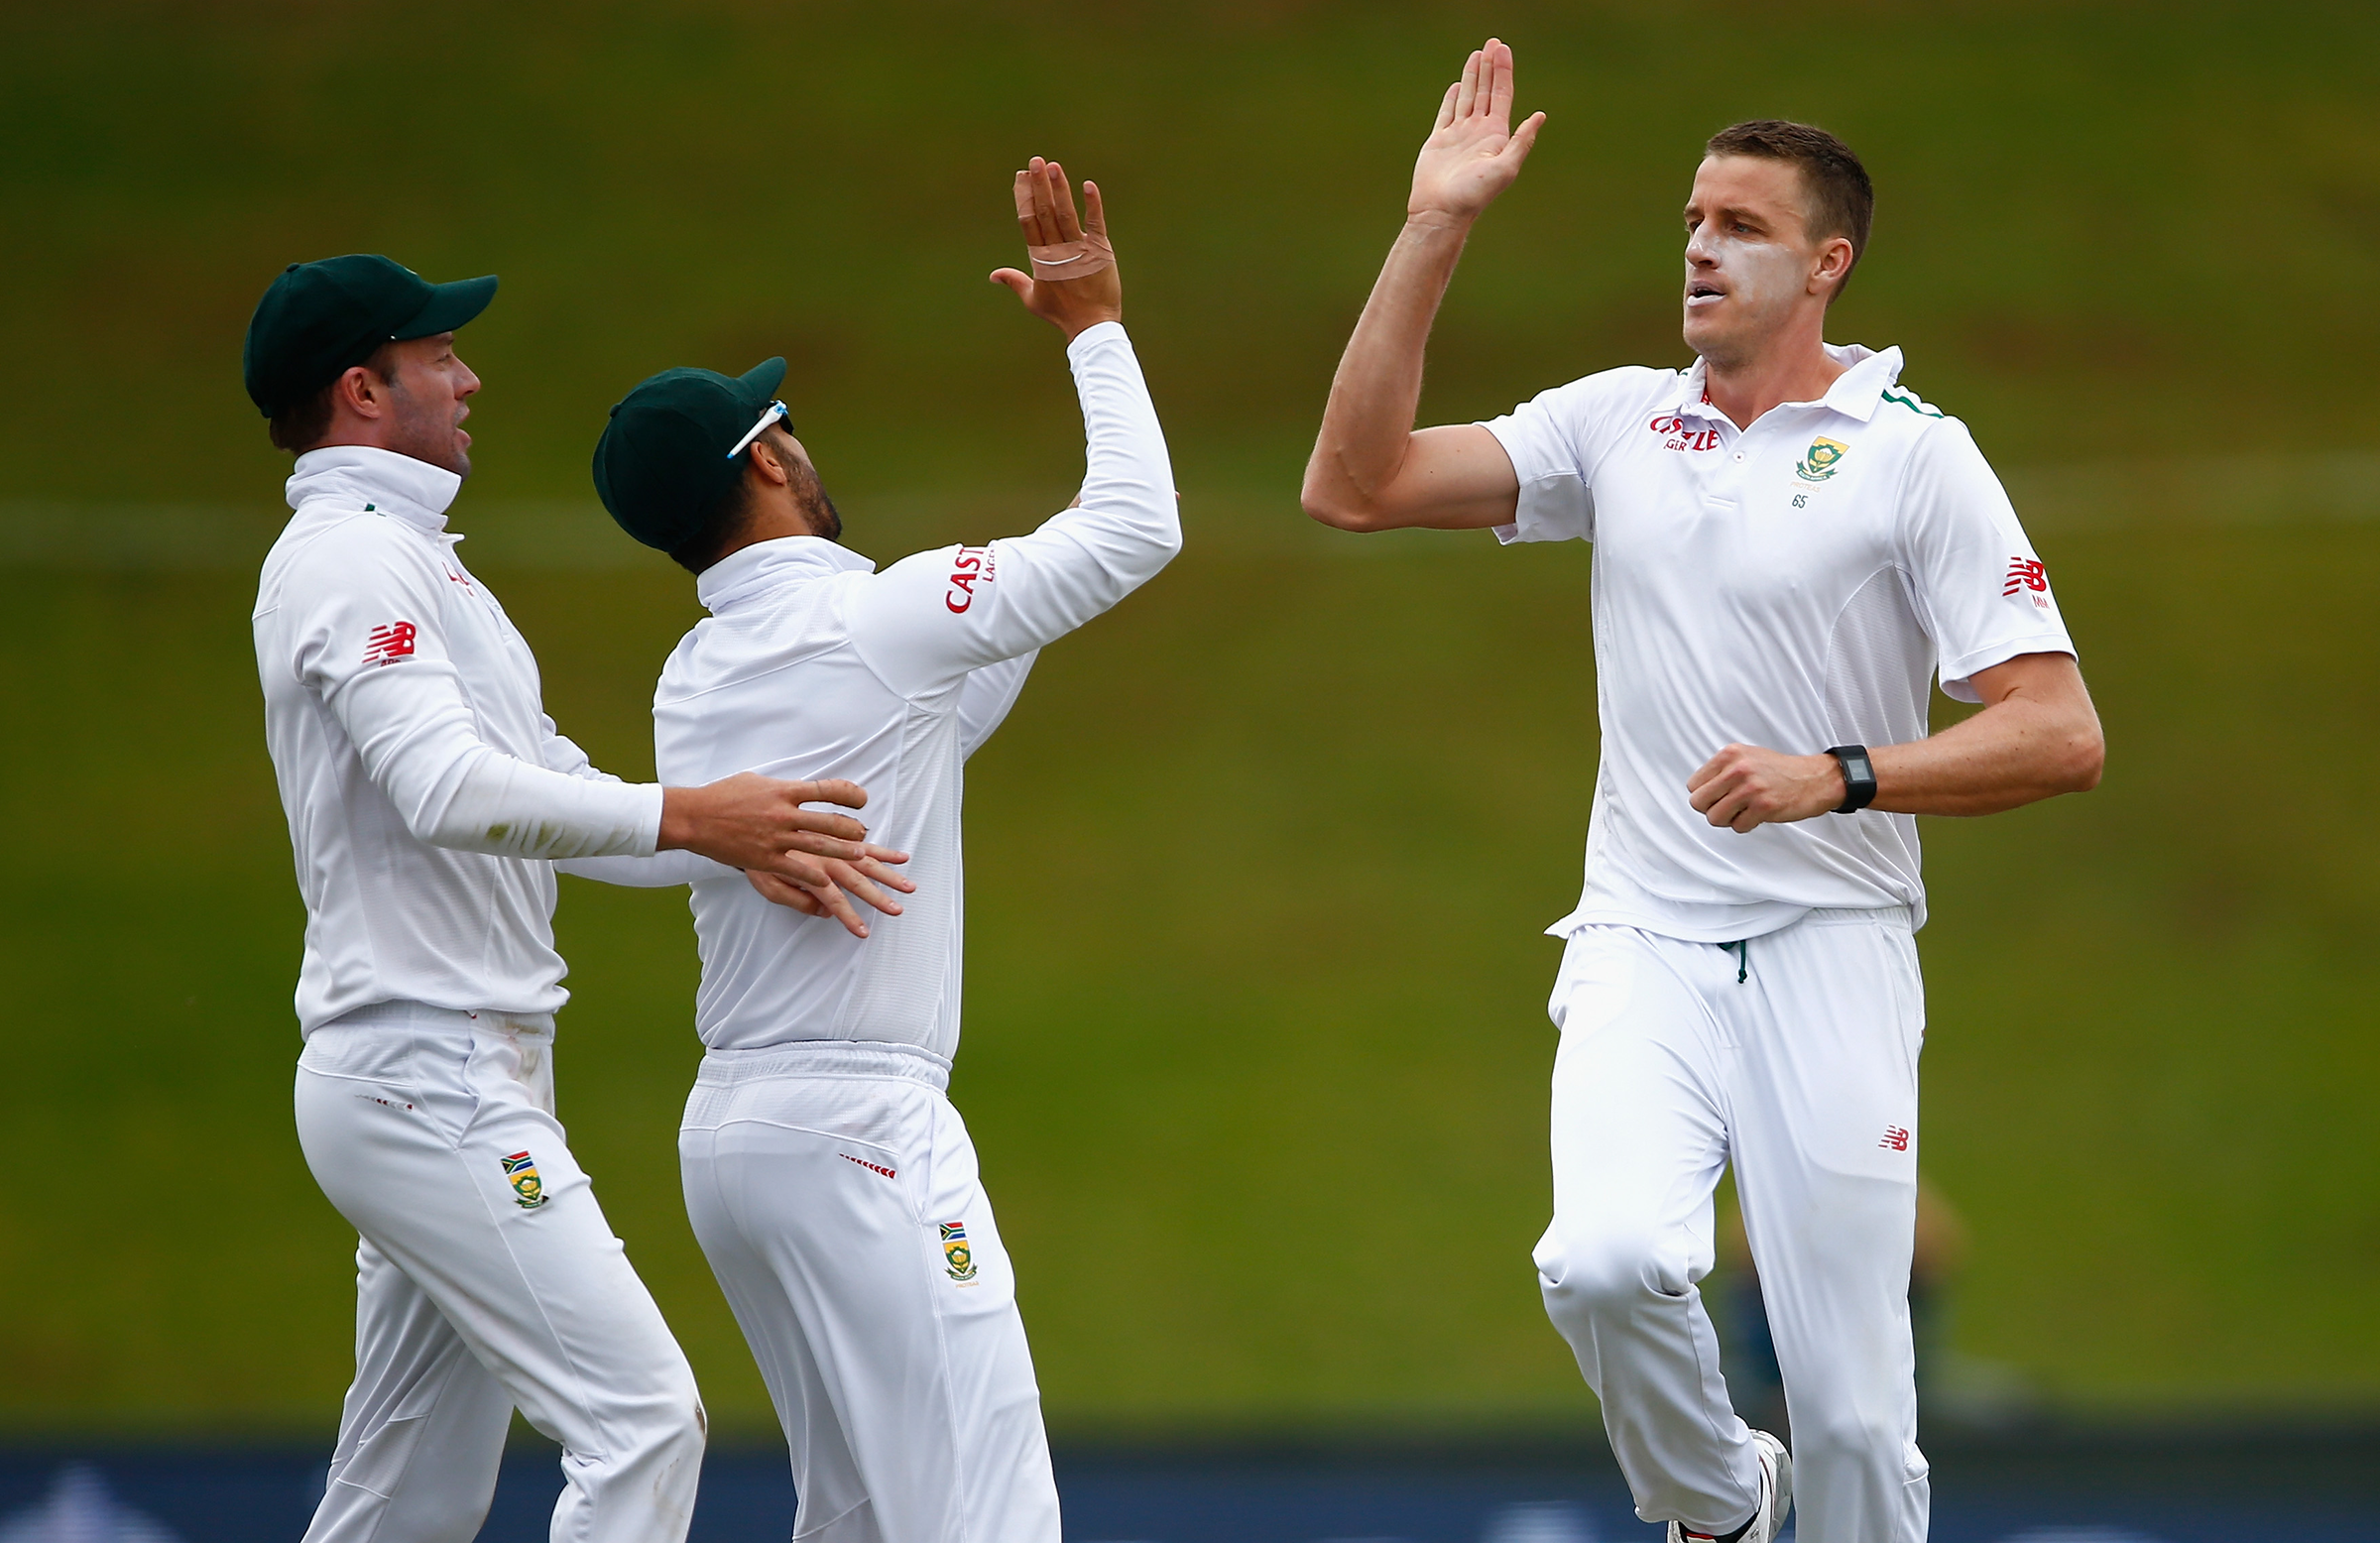 South Africa take a gamble on Morkel for Dunedin test